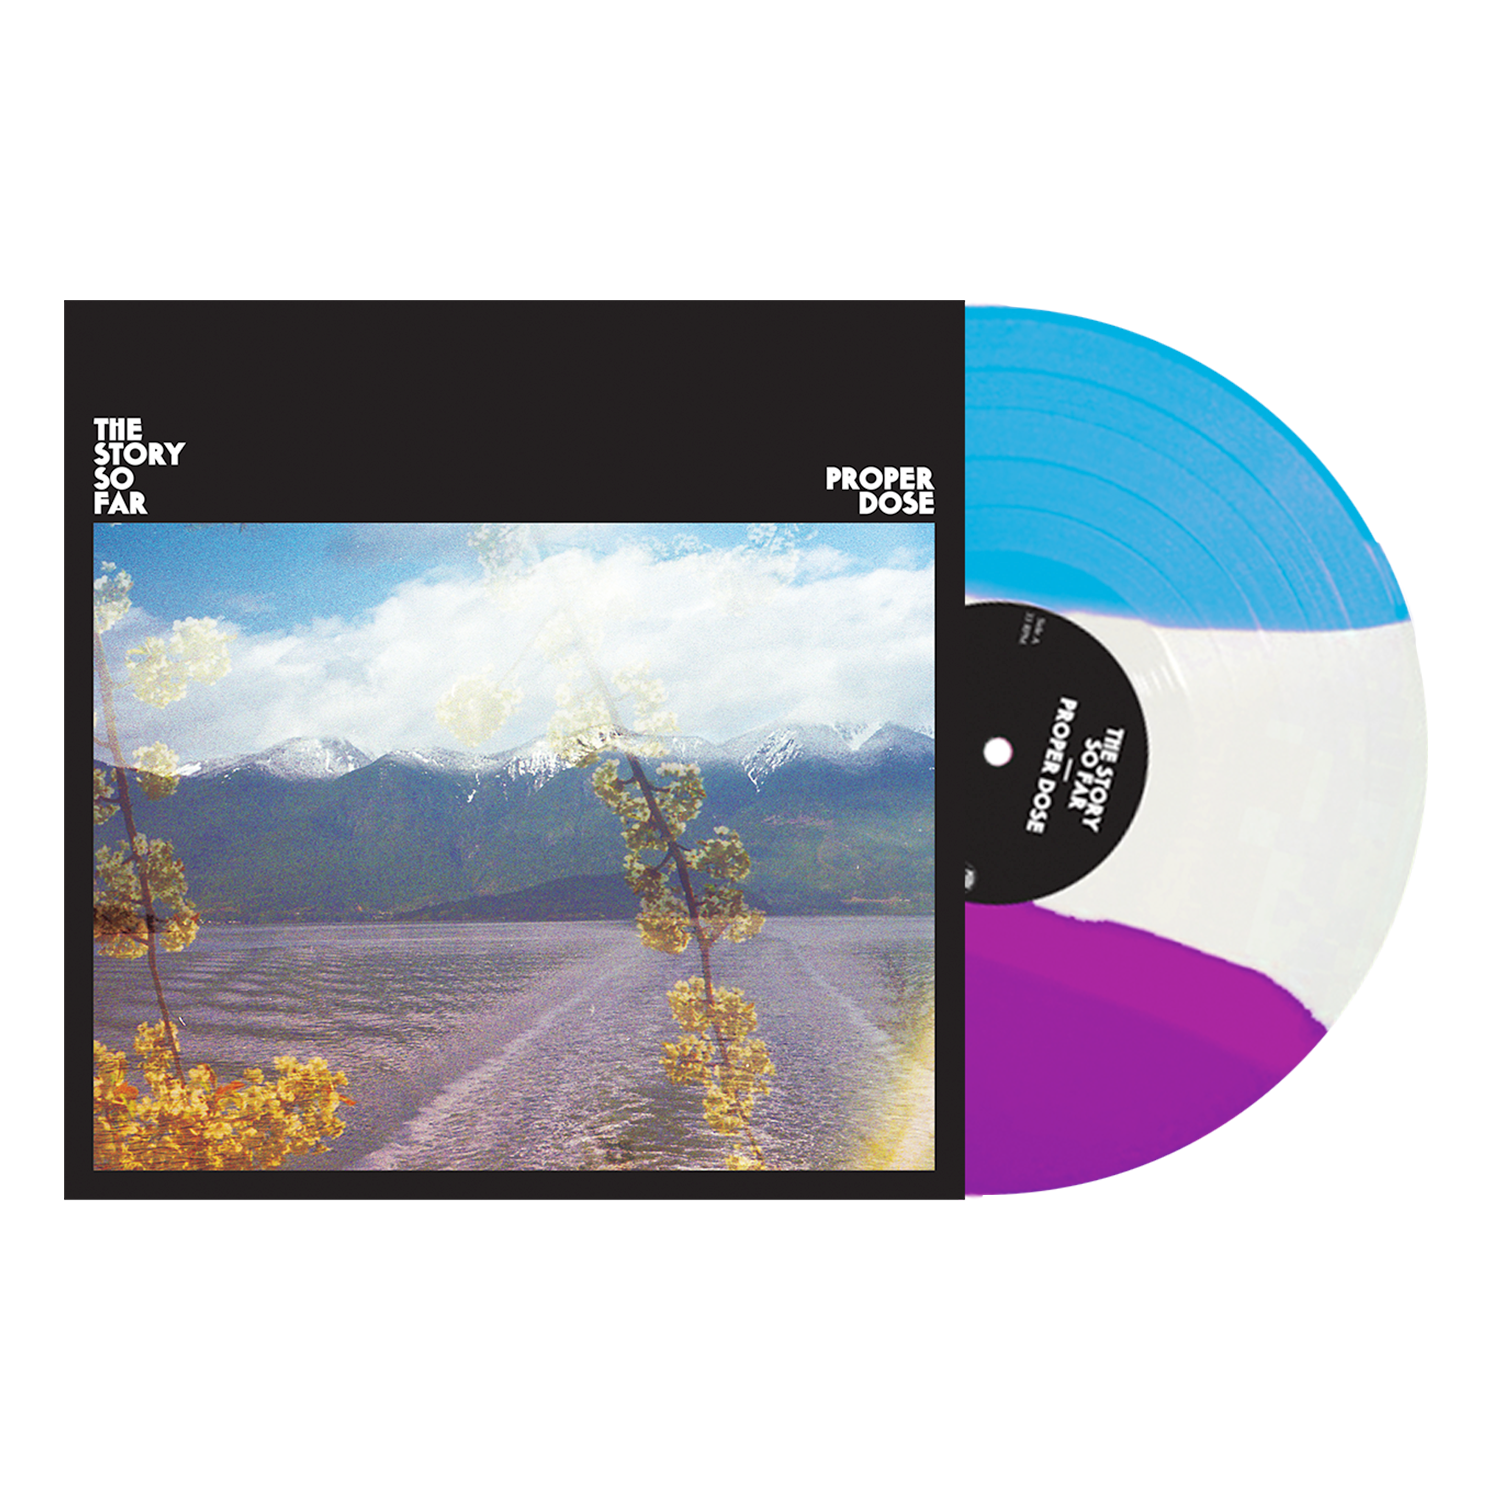 The Story So Far 'Proper Dose' Vinyl - (PN Webstore Exclusive 2) - Deep Purple / White /  Cyan Blue stripped tri-color